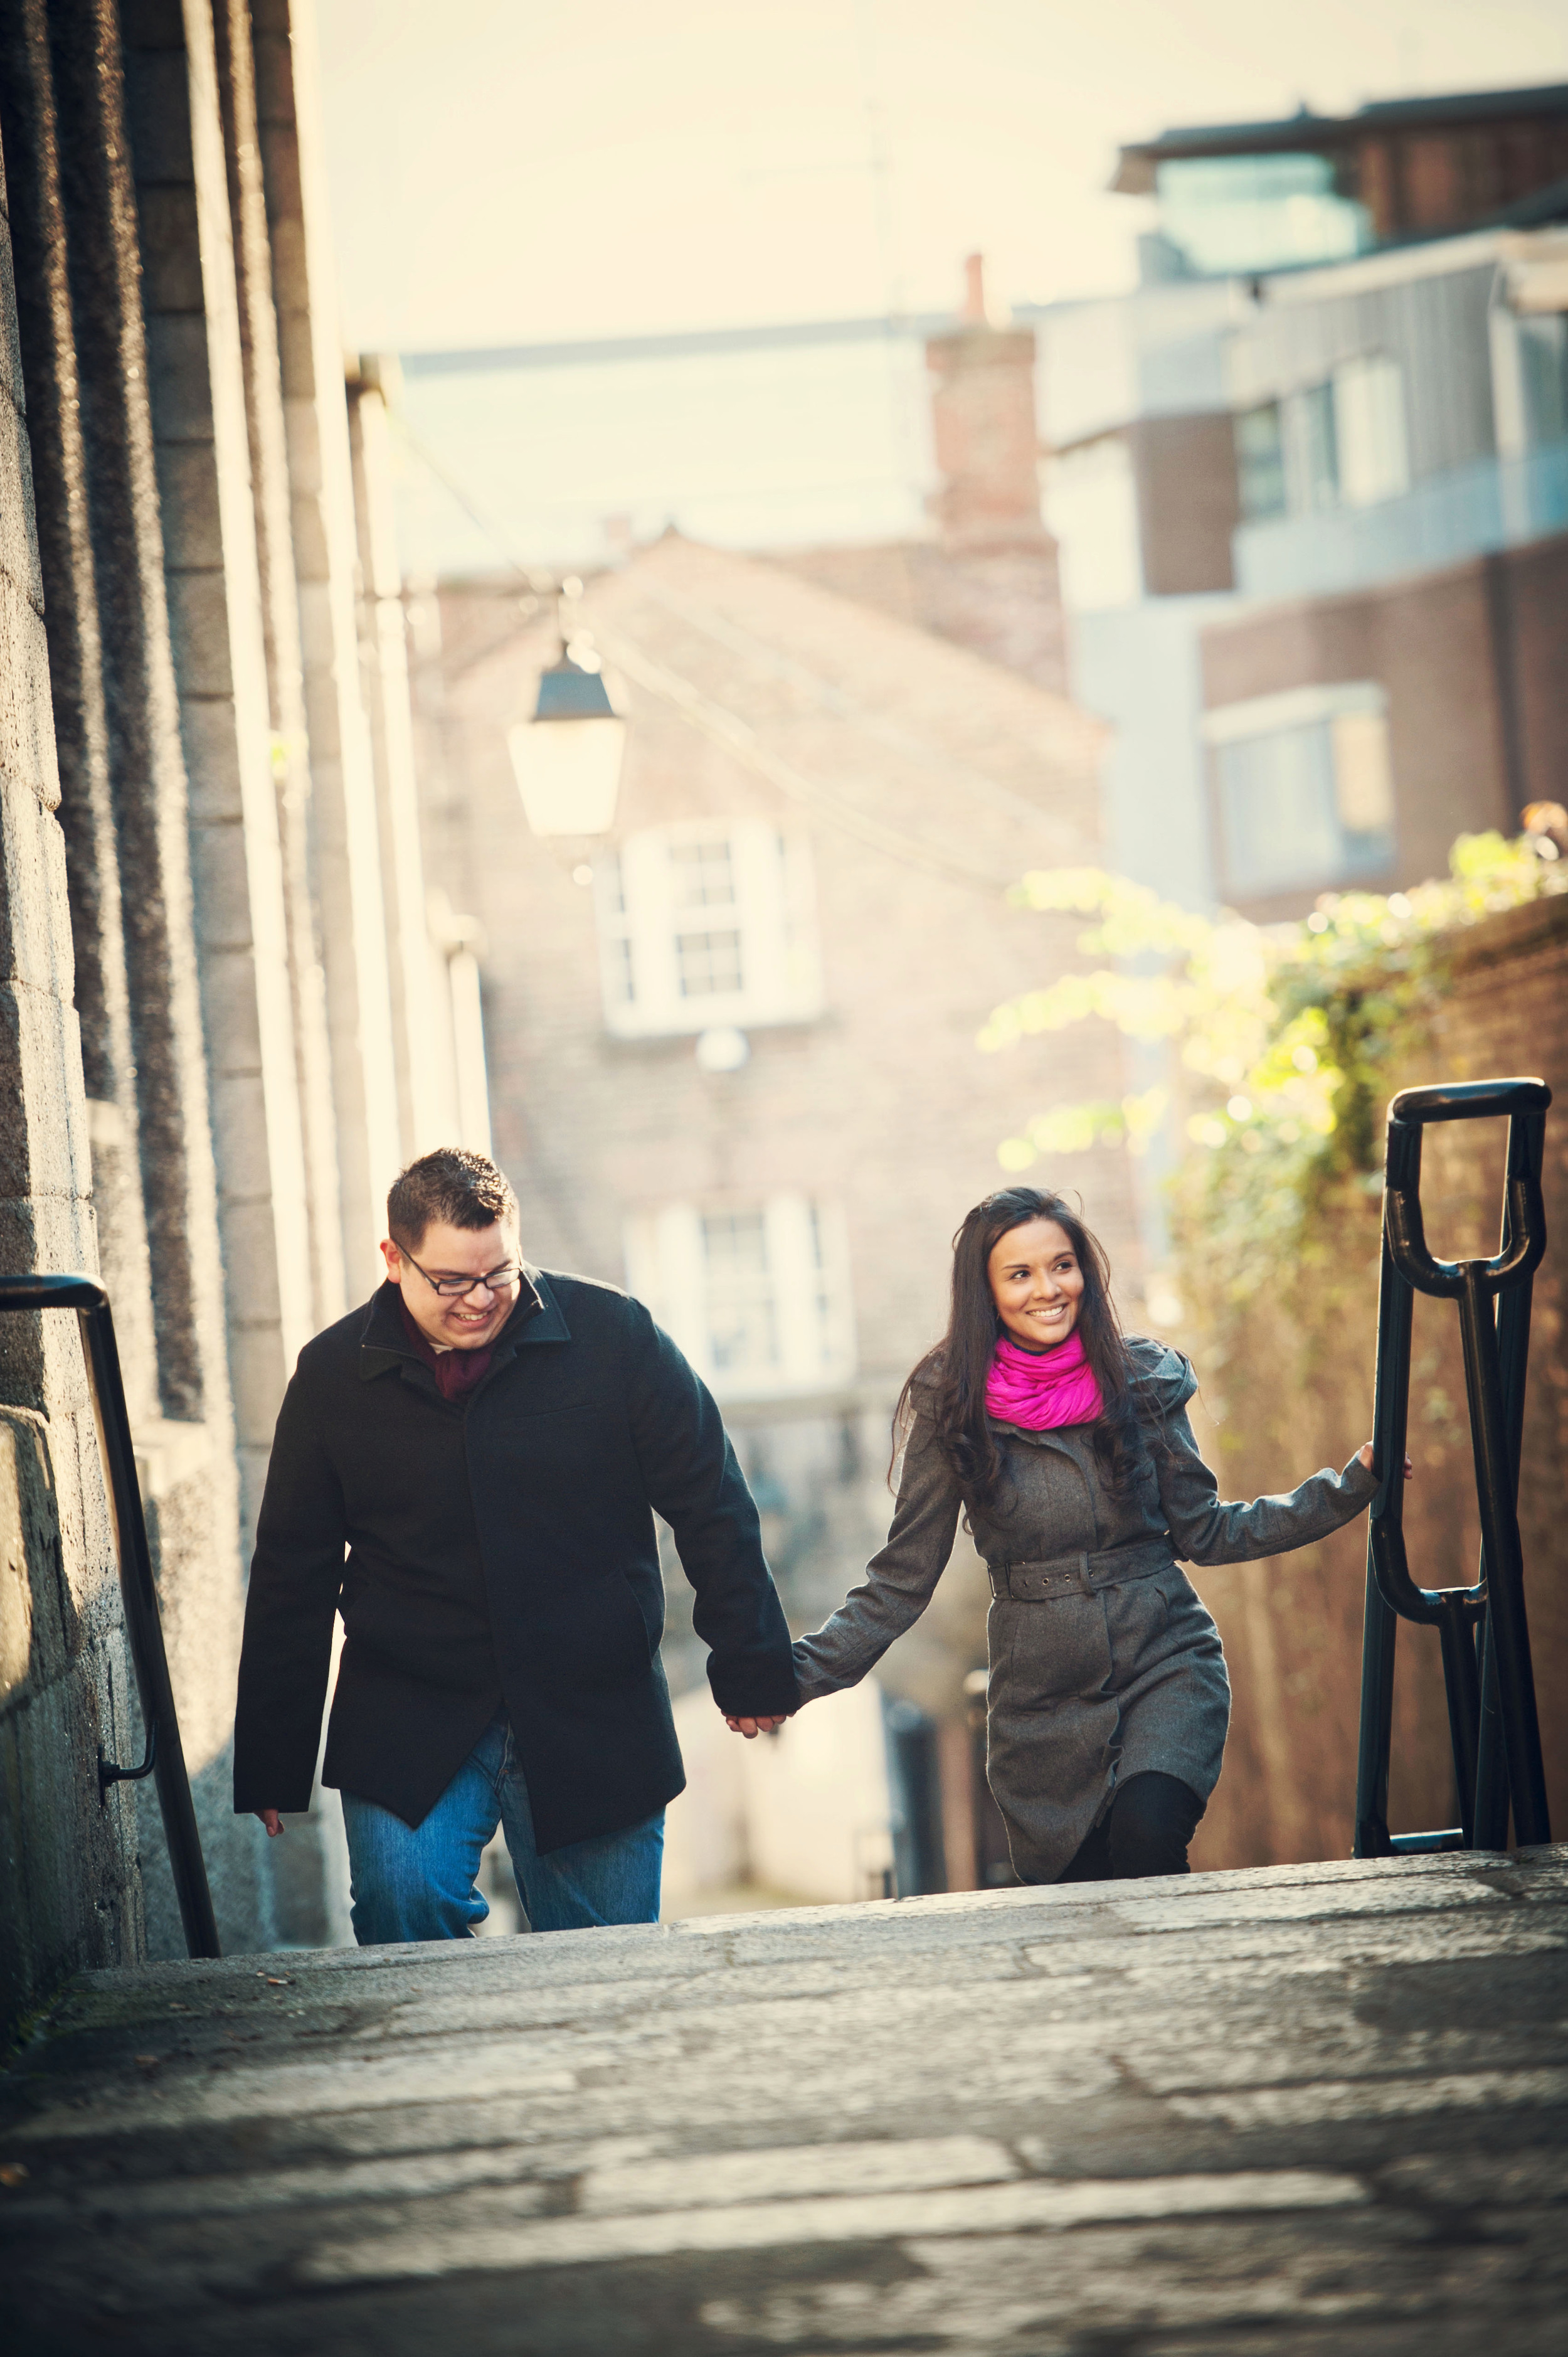 Valeria and Nestor strolling through Dublin City Centre during their engagement photo shoot by Weddings by KARA